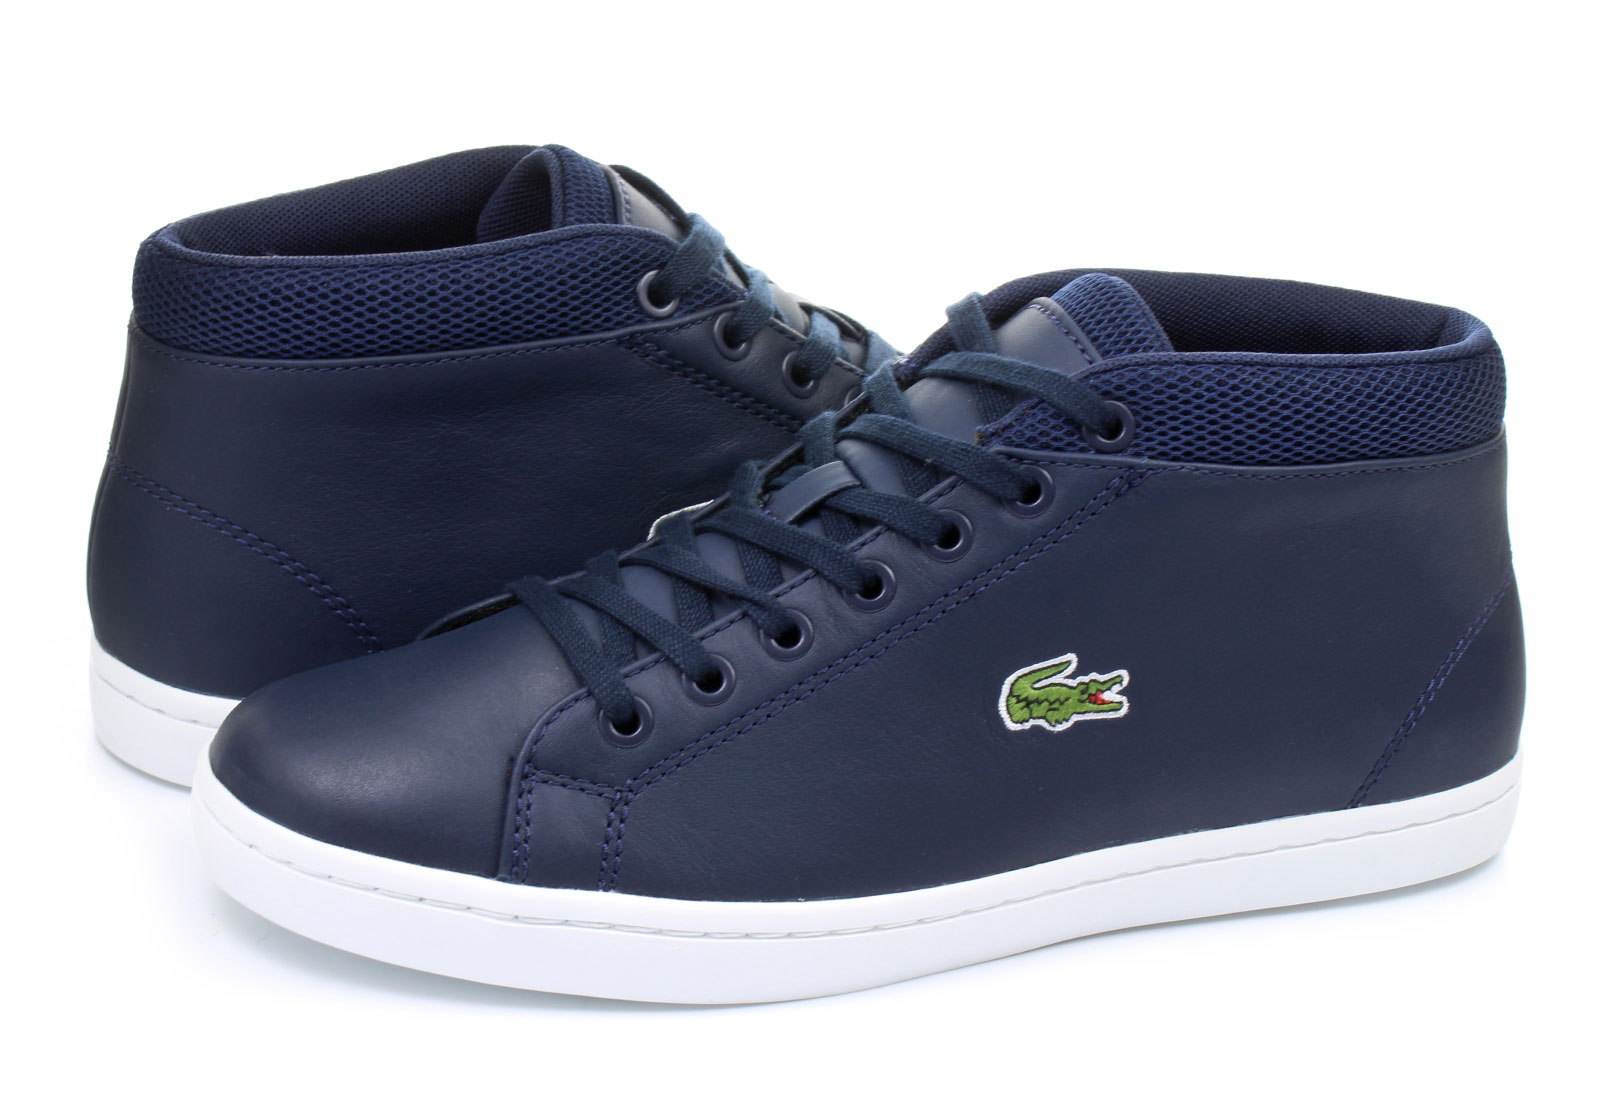 Lacoste Black And White Shoes